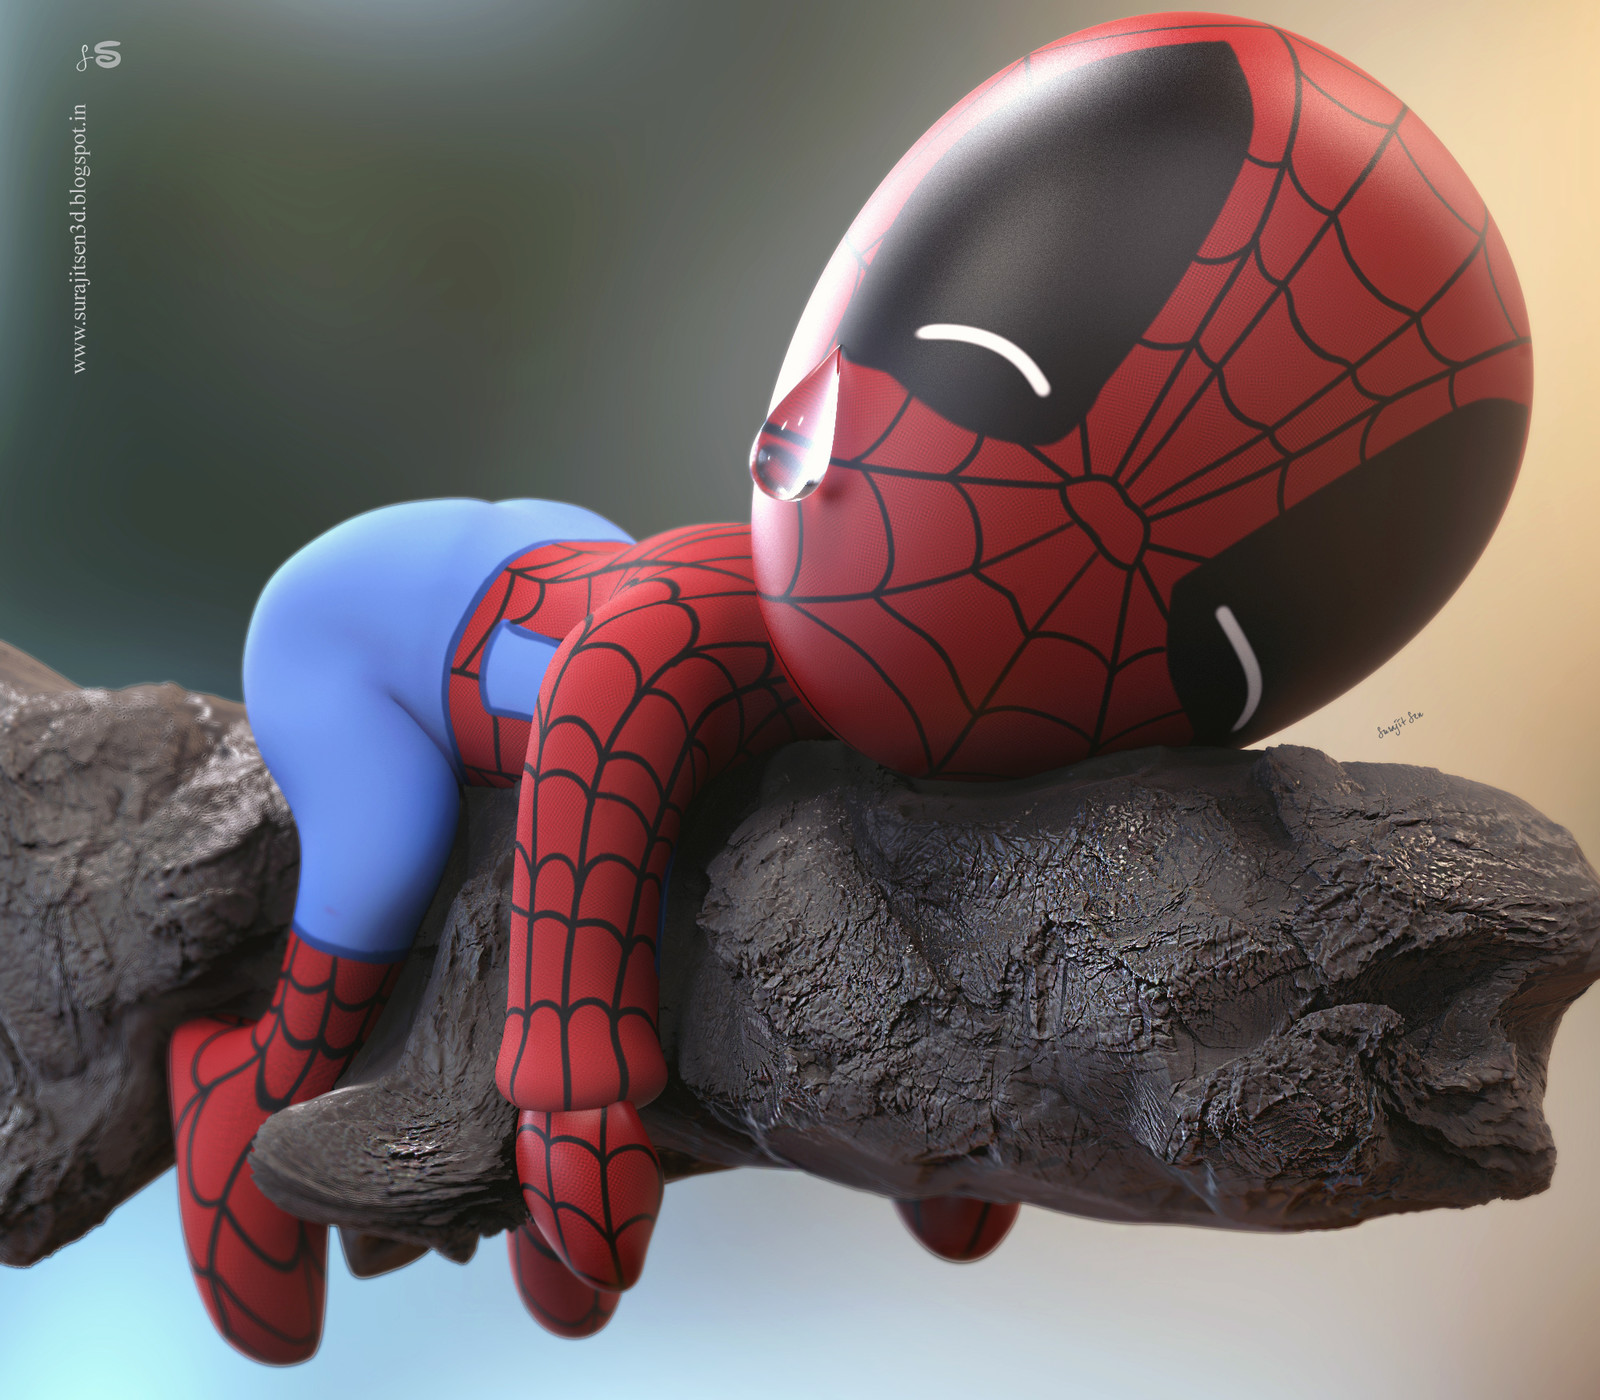 """I dedicate my creation """"Sad Spidey""""... to one and only Sir Stan Lee .... We will really miss the Legend of Marvel Comics.  RIP Stan Lee."""